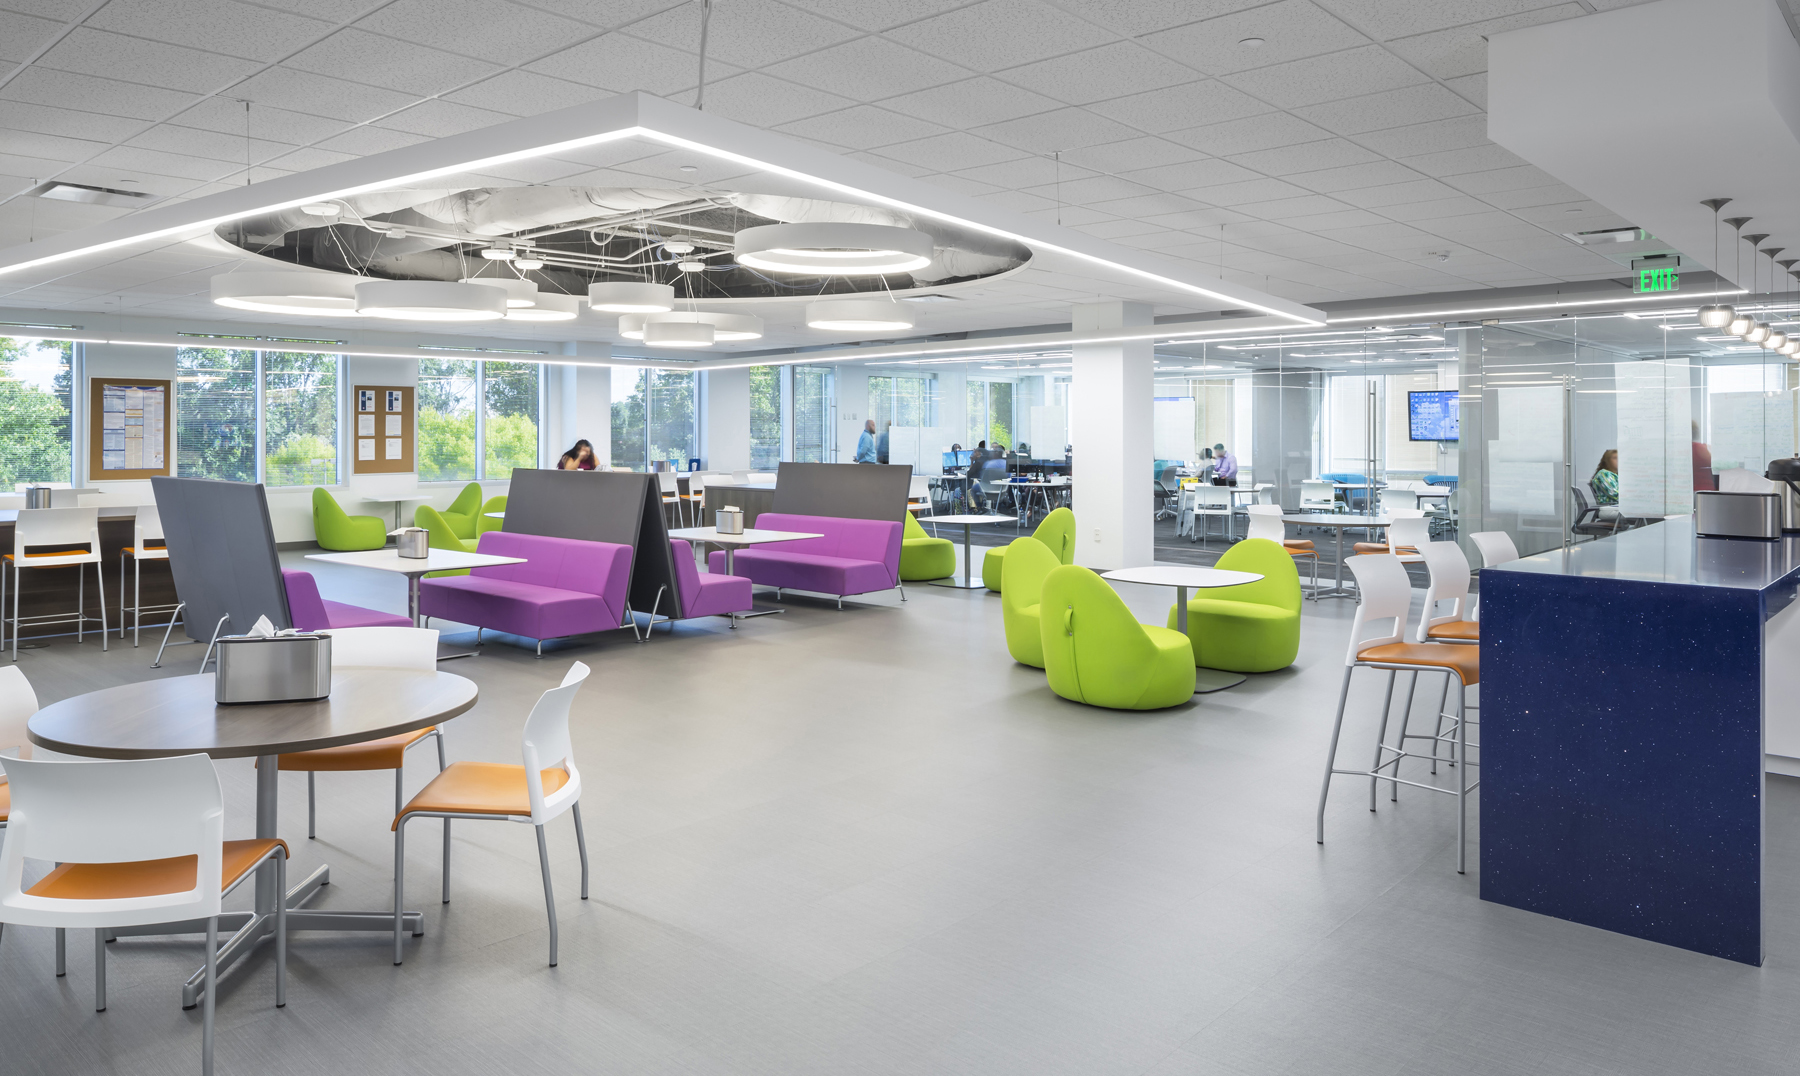 Smithgroup Gives A Call Center Flexibility And Adaptability Nationwide Work Design Magazine